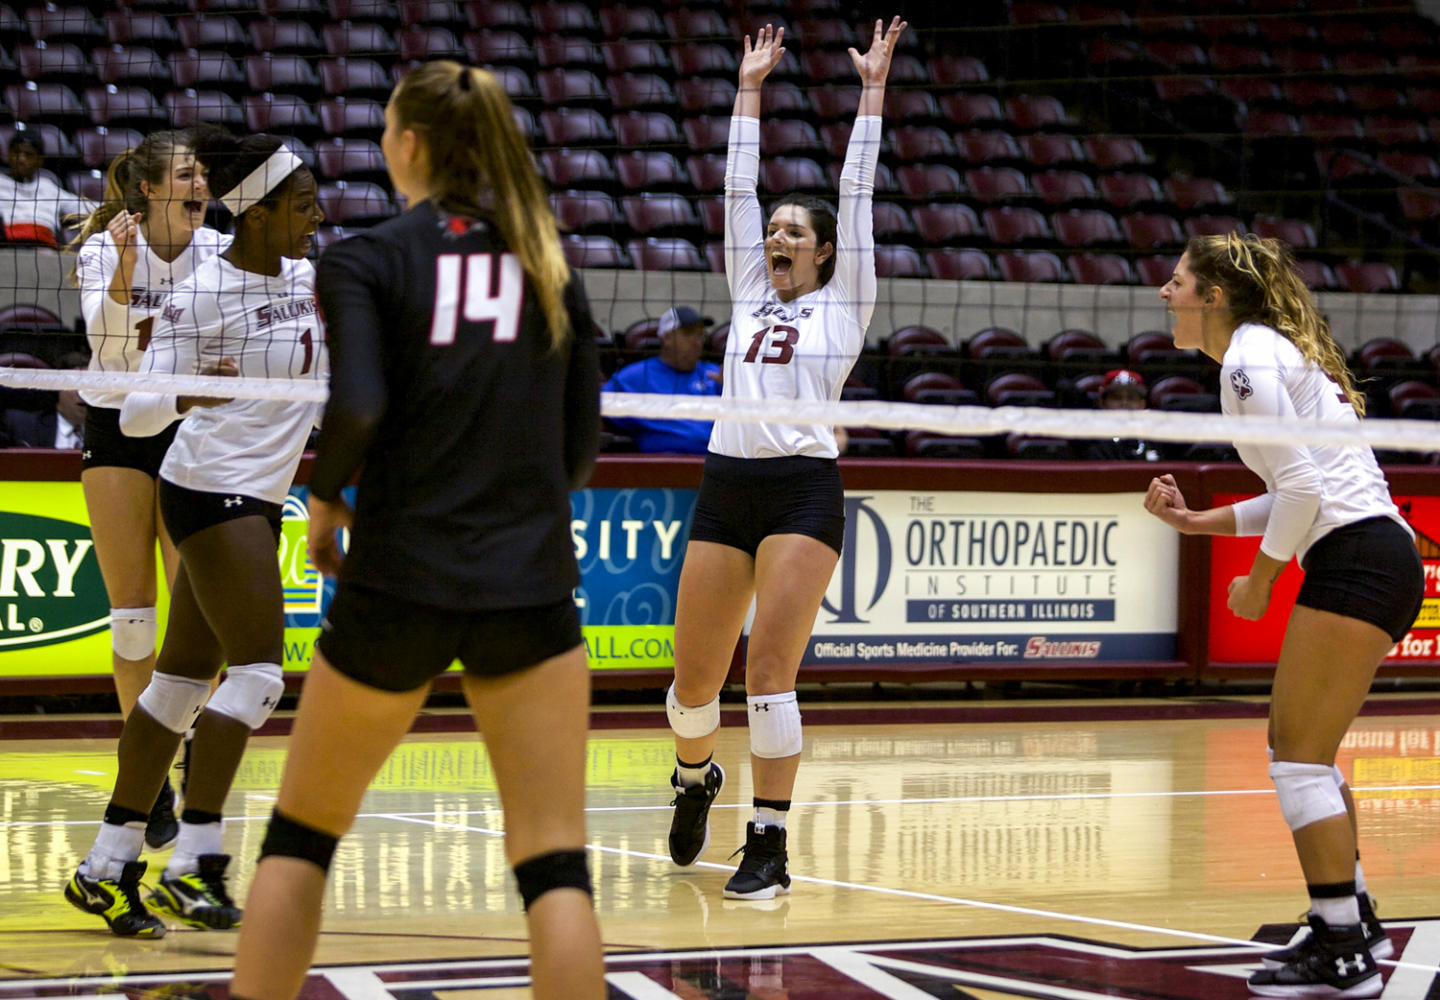 Freshman setter Rachel Maguire, 13, celebrates with her teammates, Tuesday, Sept. 12, 2017, during the Saluki's home game at SIU Arena. The Salukis beat the Redhawks in the fifth set, 15-13. (Mary Newman | @MaryNewmanDE)